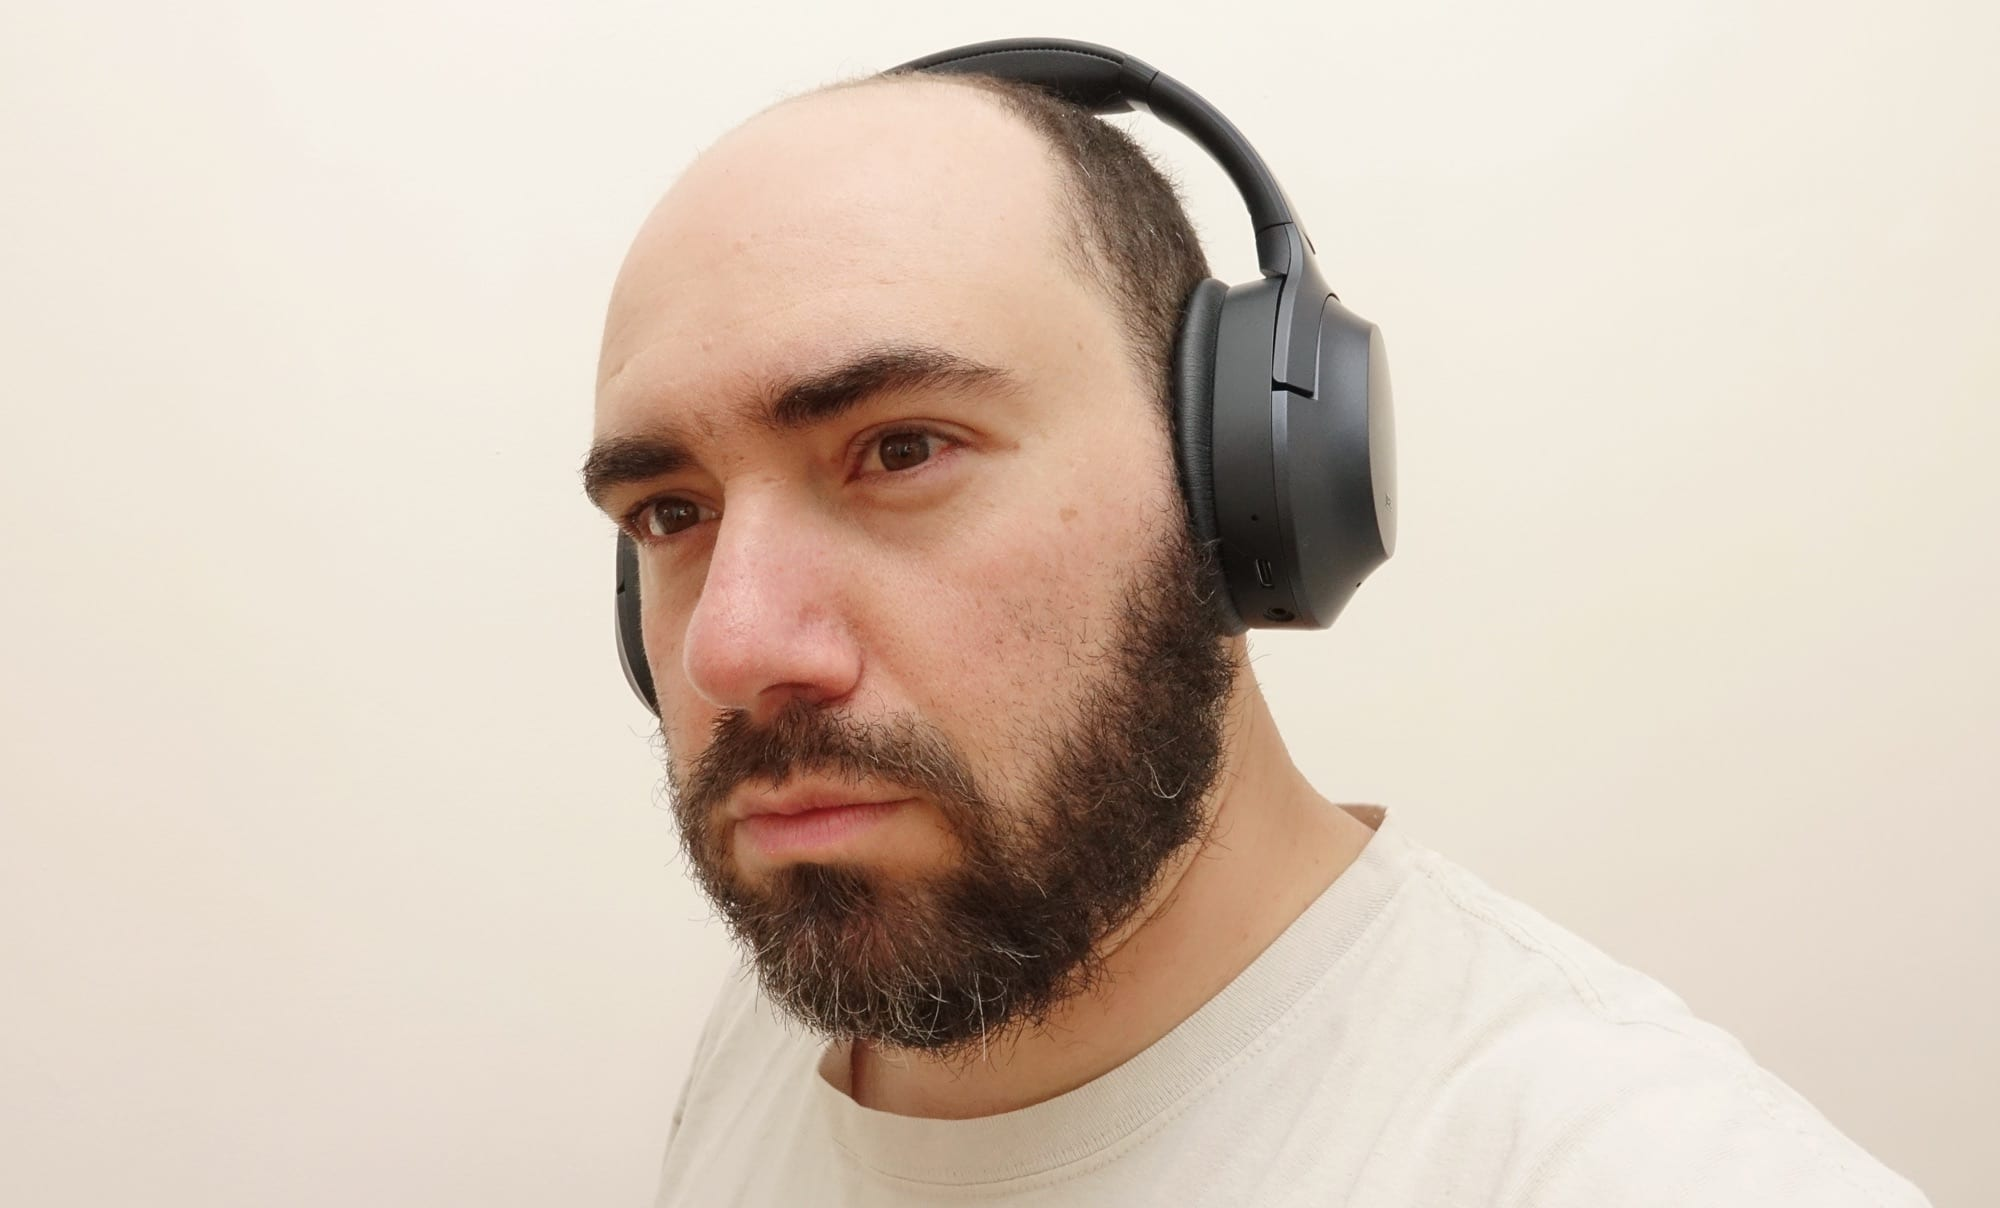 Trying out the Razer Opus headphones